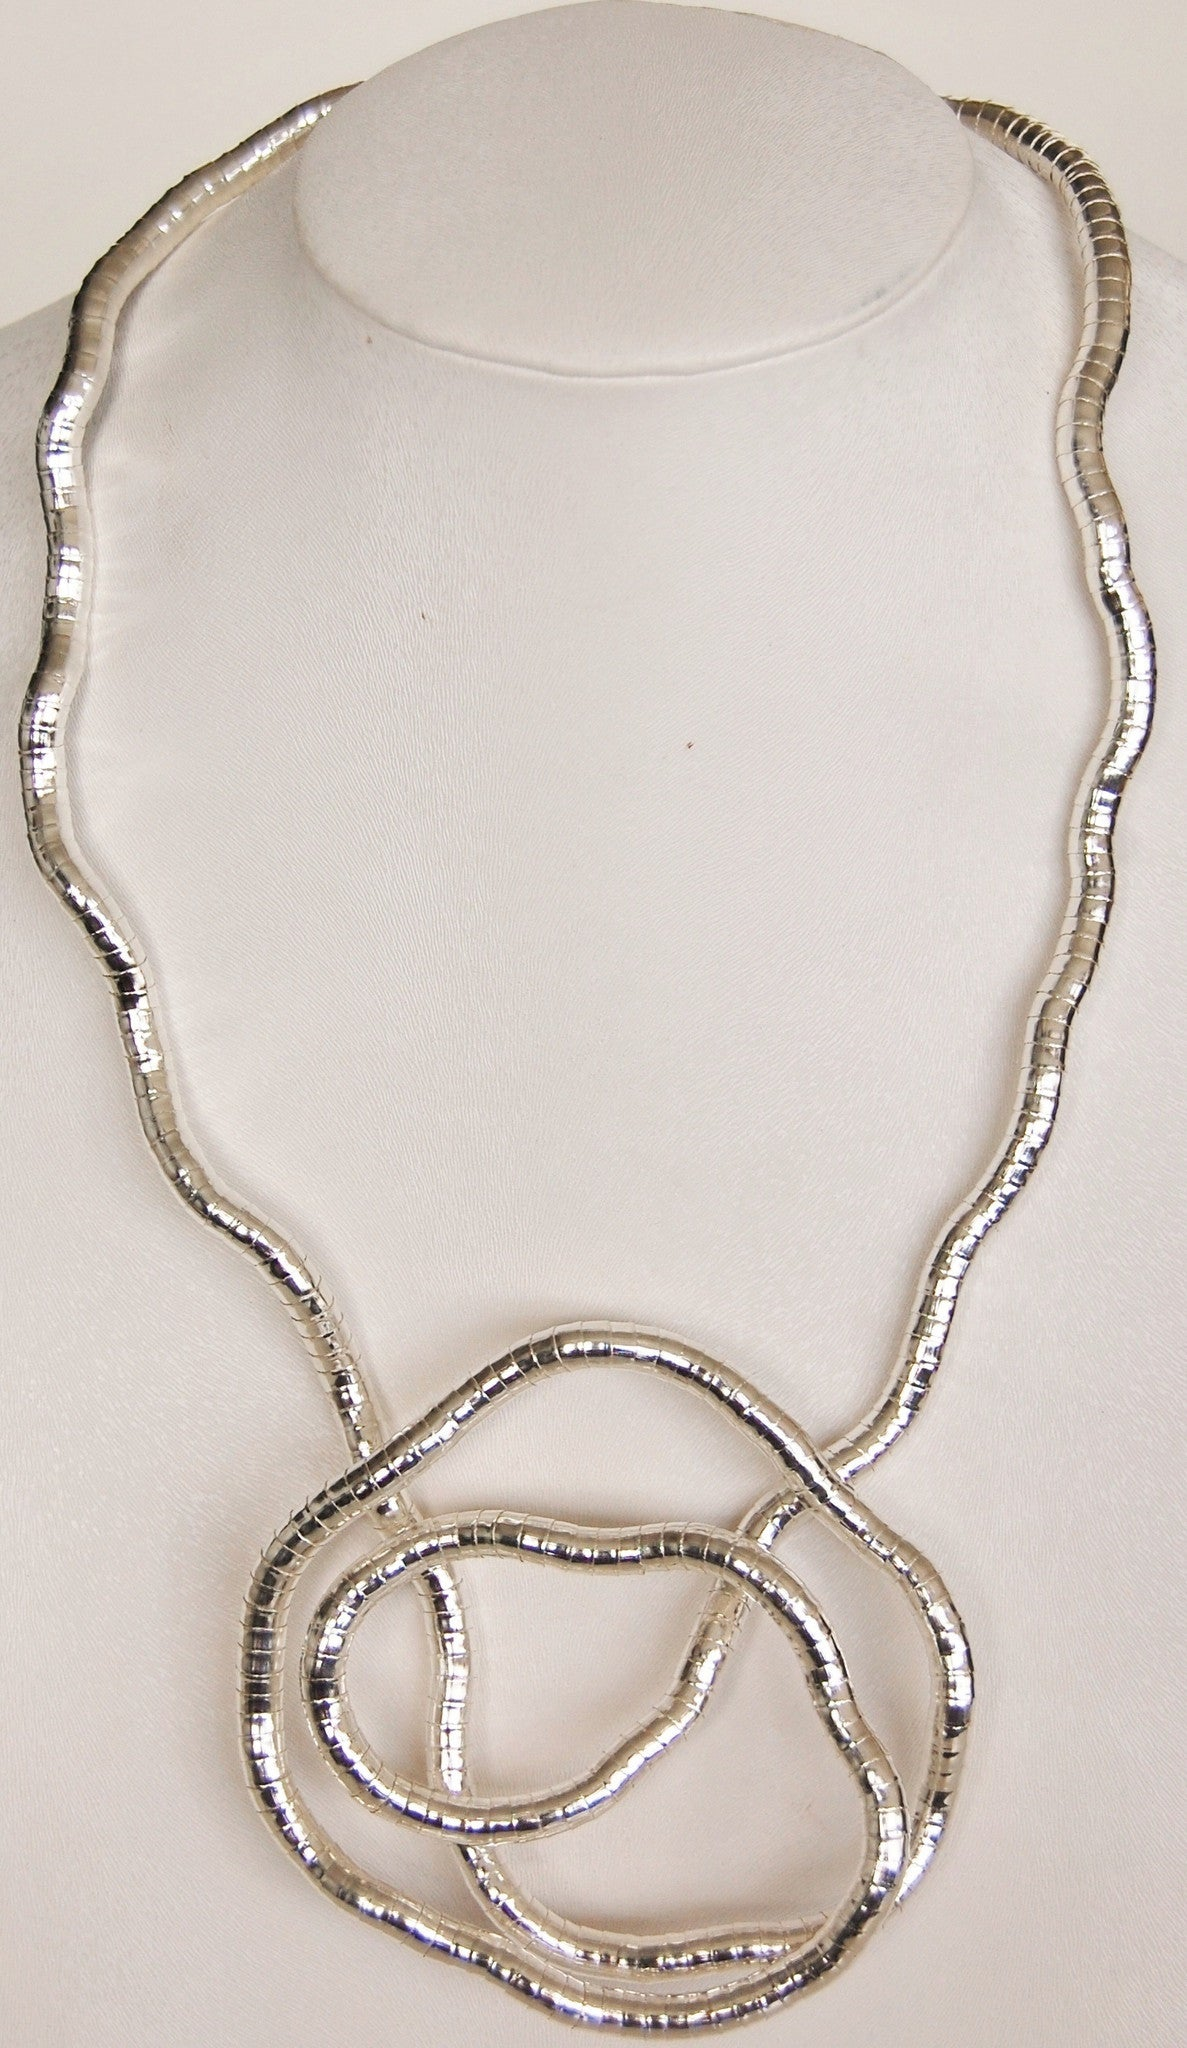 "Silver SnakeTwist, 5mm Thick, 36"" Circumference"